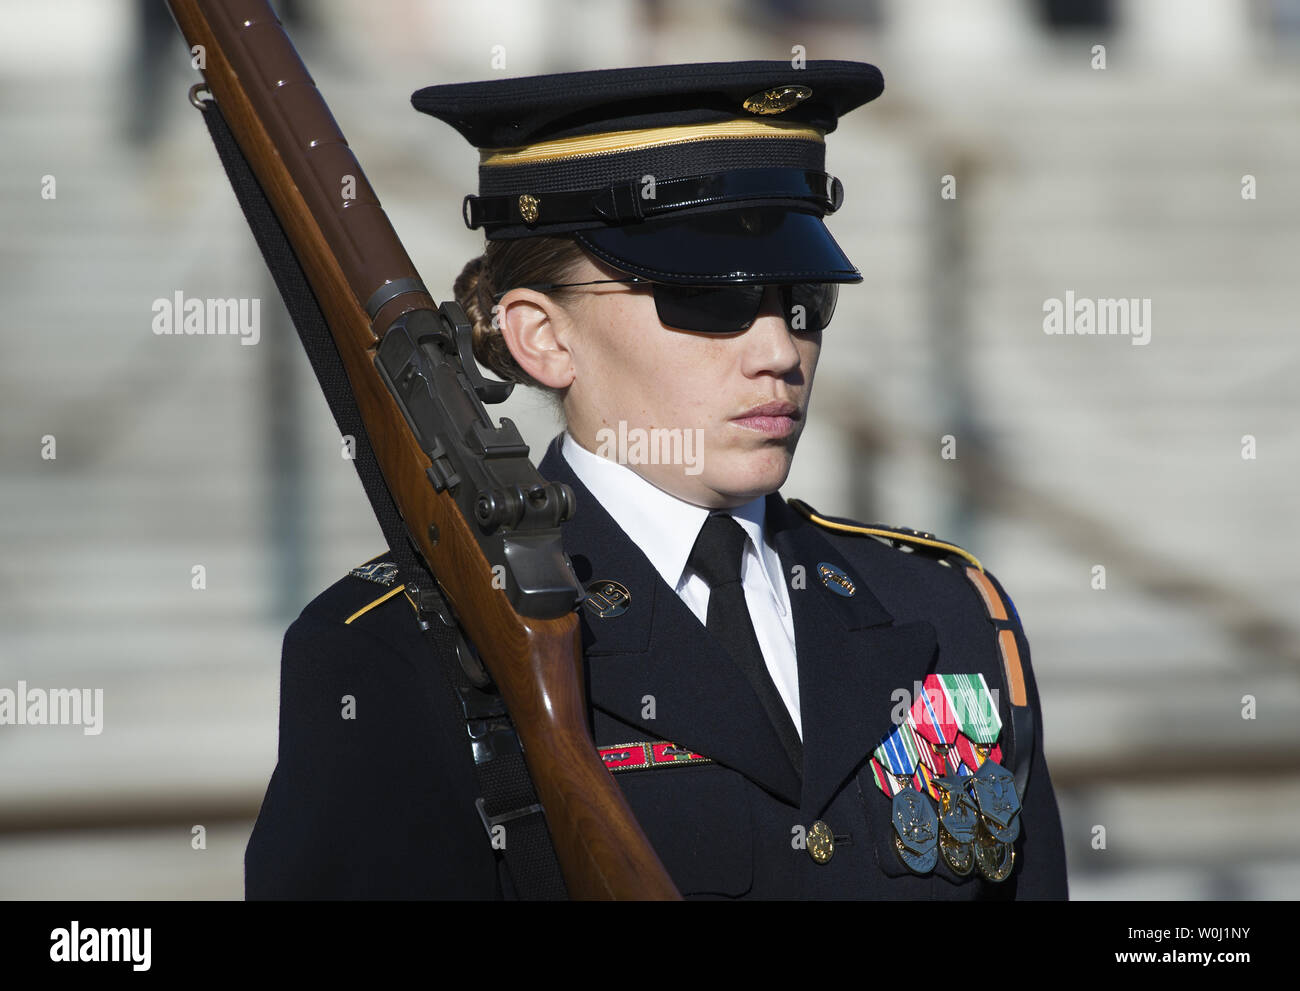 Sgt. Ruth A. Hanks, who is training to receive her Tomb Badge, guards the Tomb of the Unkowns at Arlington National Cemetery in Arlington, Va., November 11, 2015.  There have been only 3 female Tomb Guards who earned their Tomb Badge.  Photo by Molly Riley/UPI - Stock Image